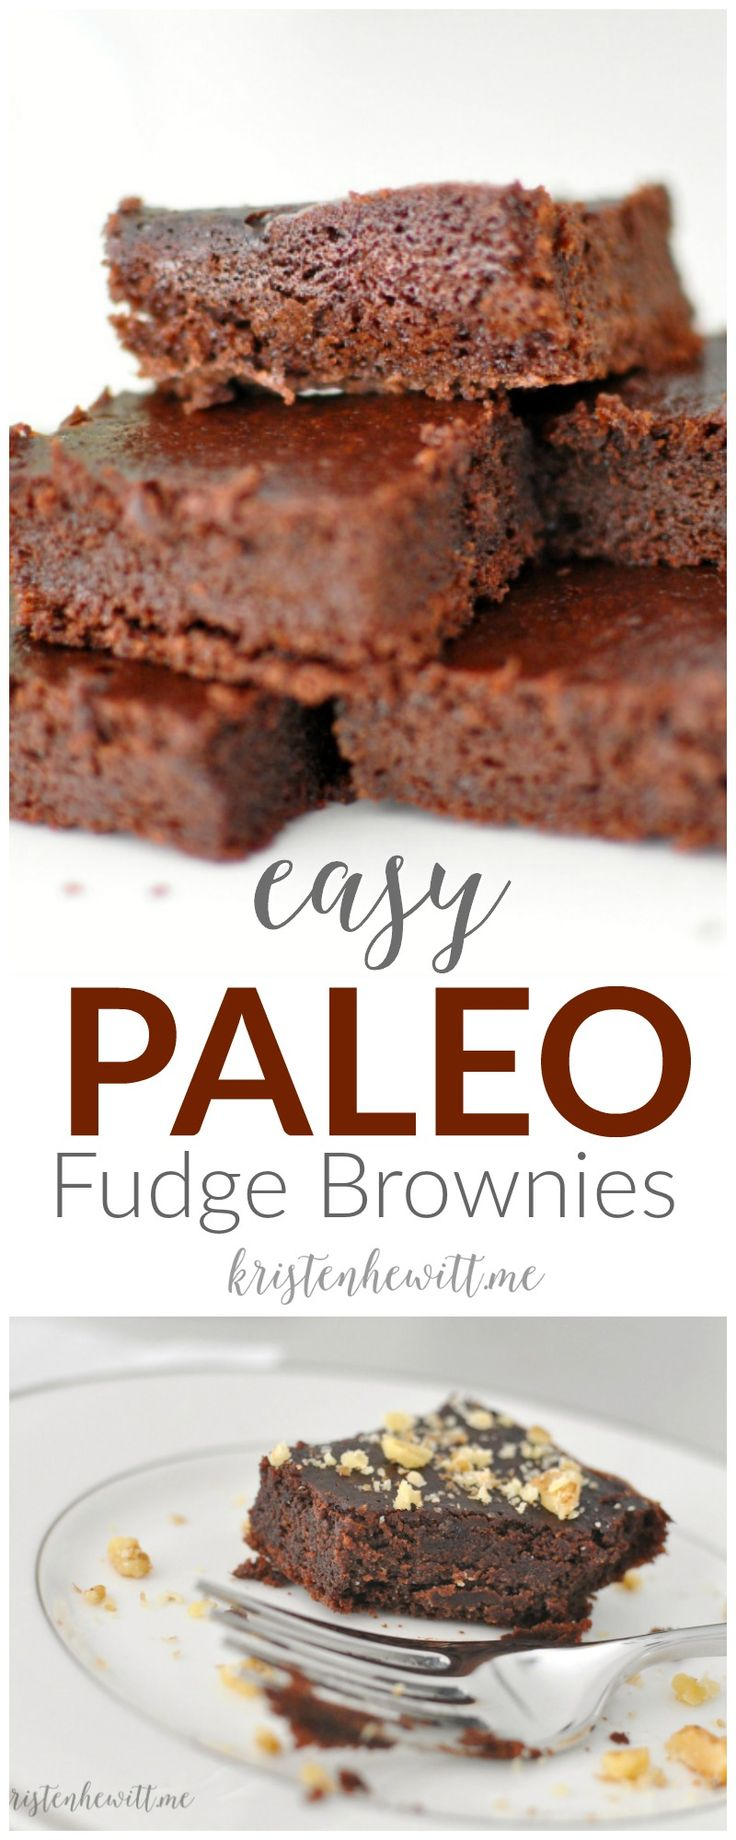 Finding sweet treats is hard when you're on the paleo diet. But don't de…